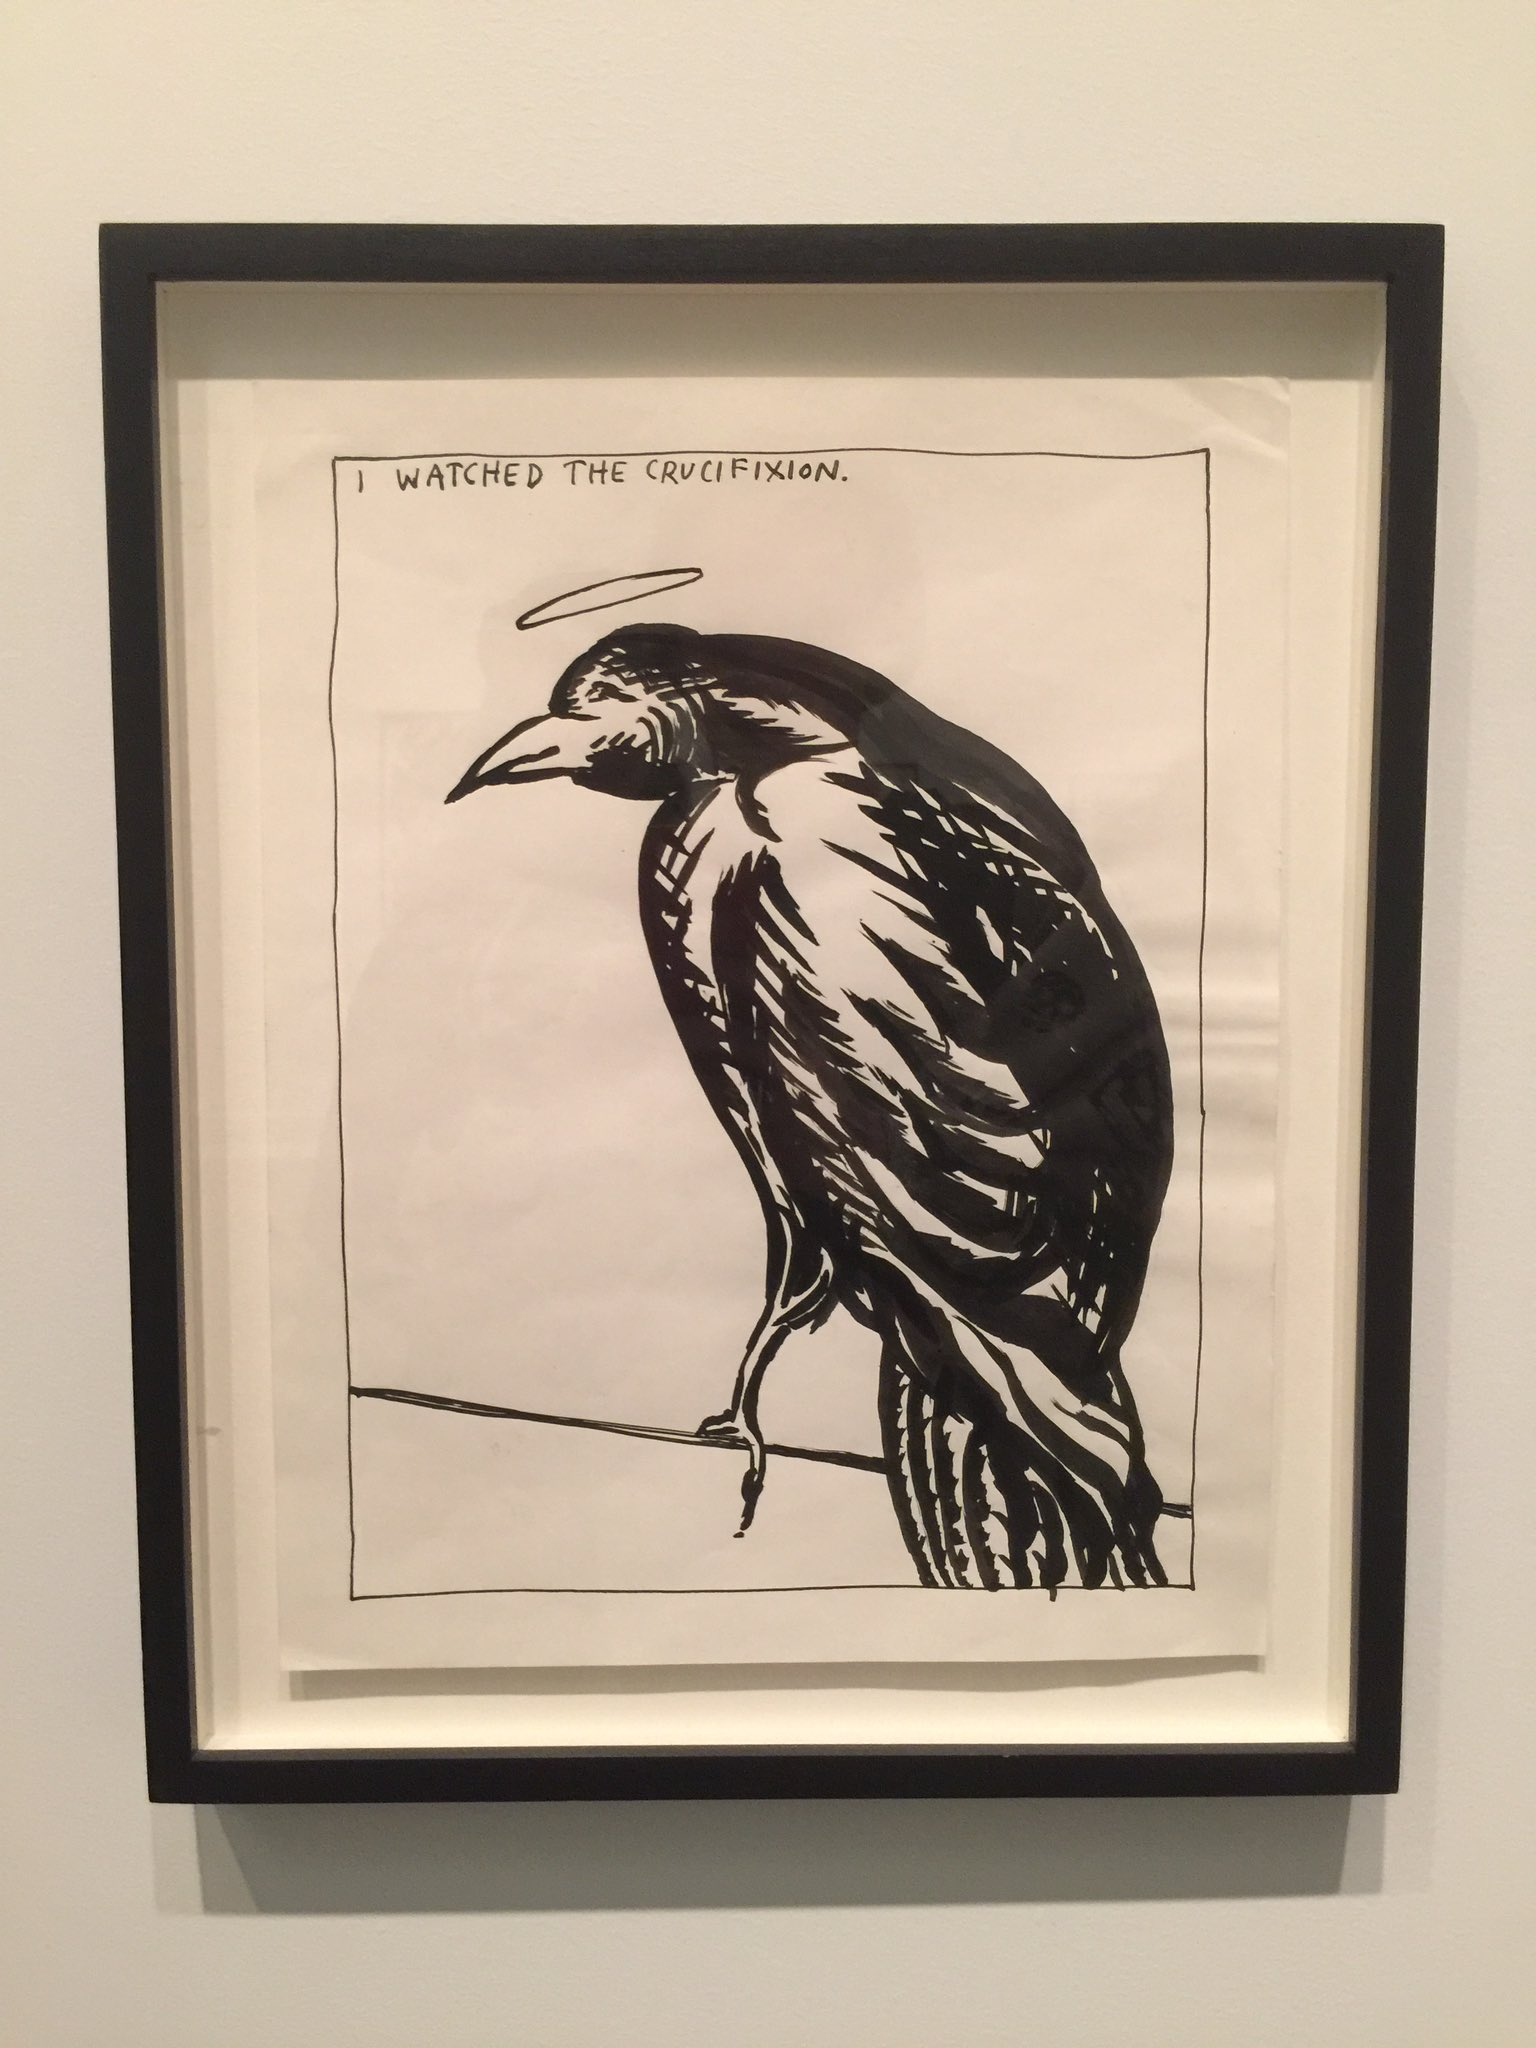 Raymond Pettibon. New Museum. NYC. If you can. You gotta go. https://t.co/NjISXNOITx